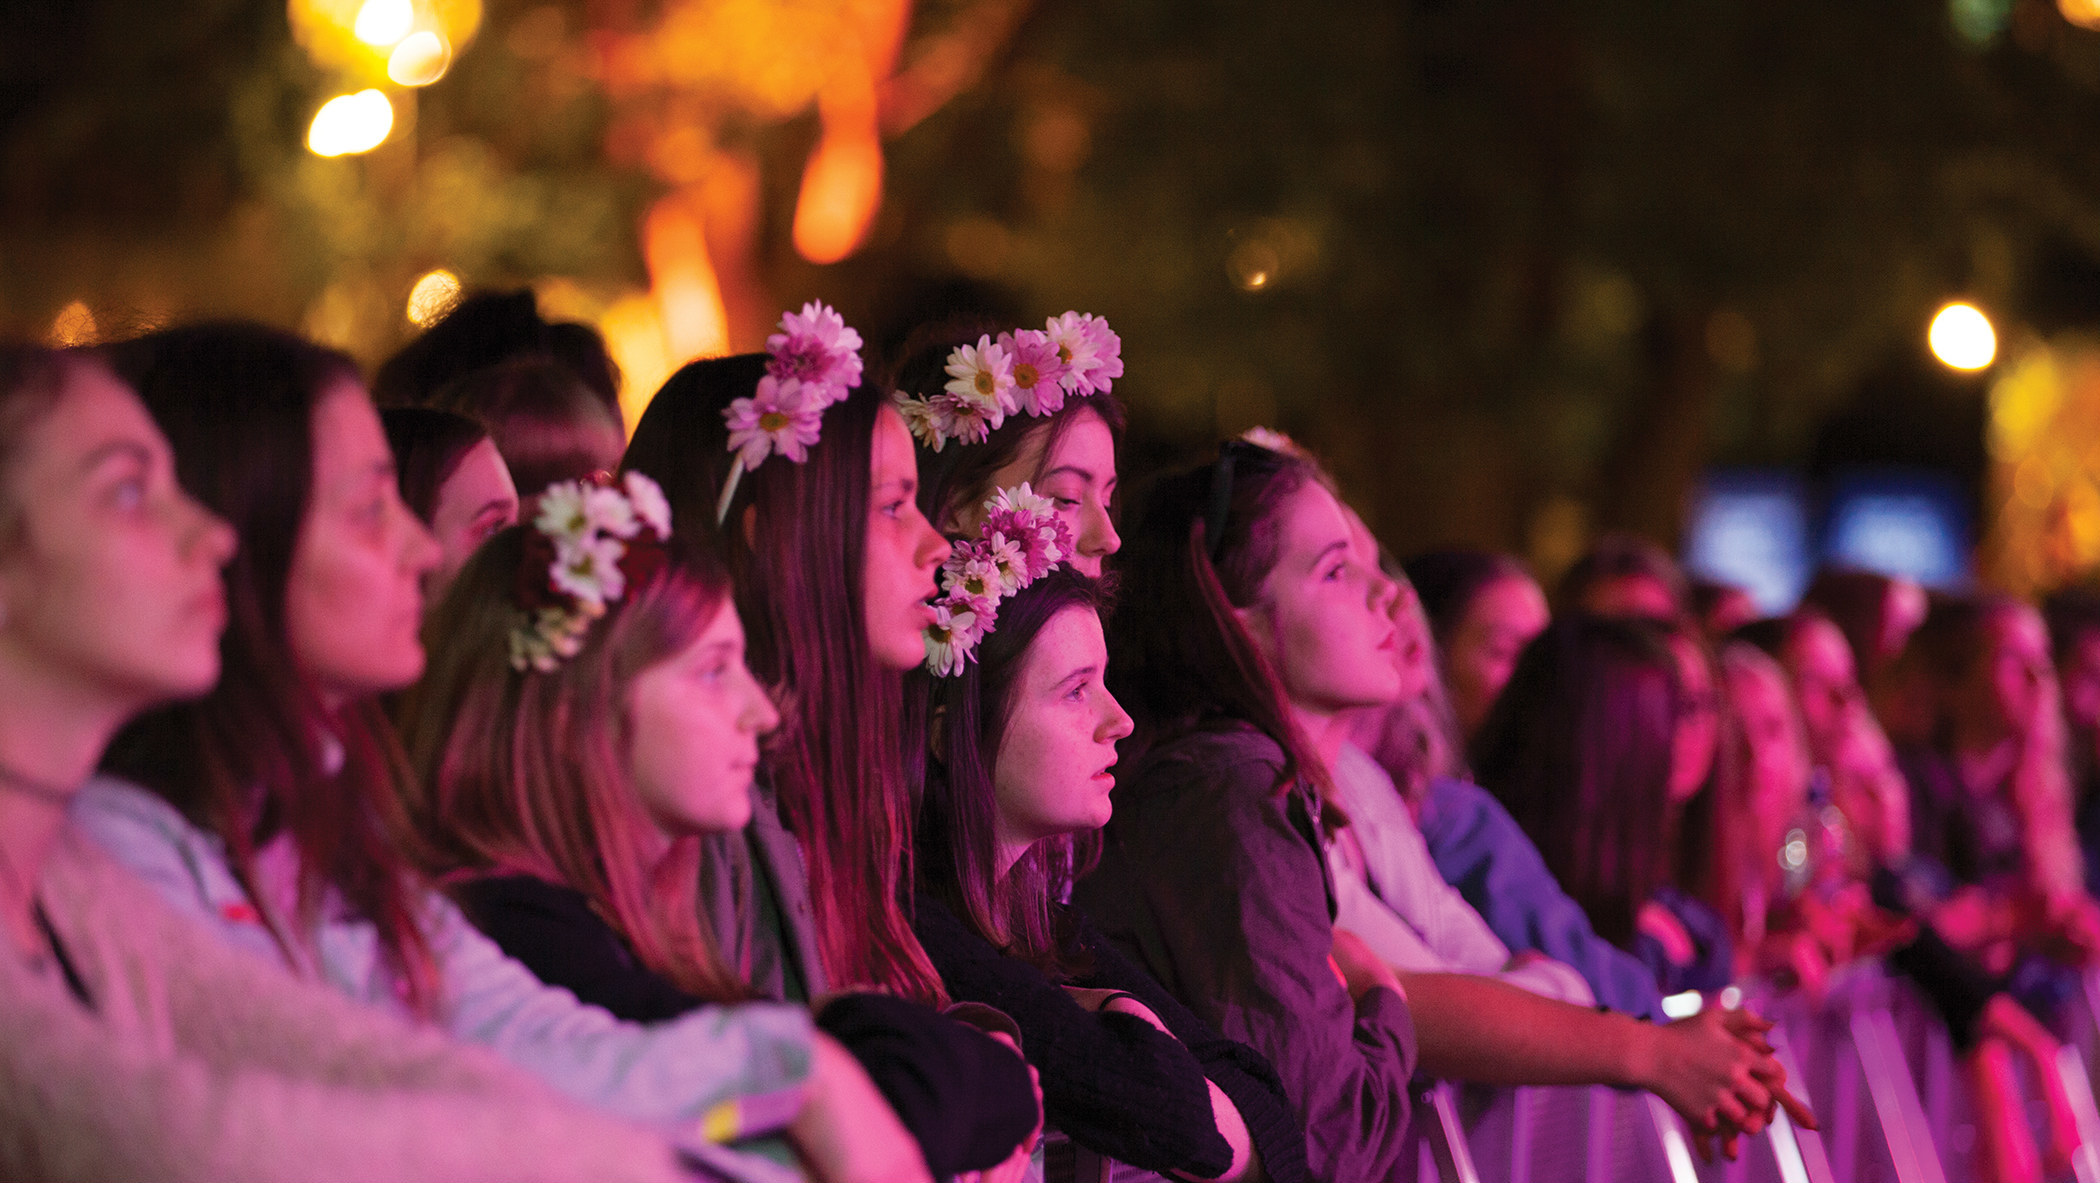 Spring festivals and events in Queensland